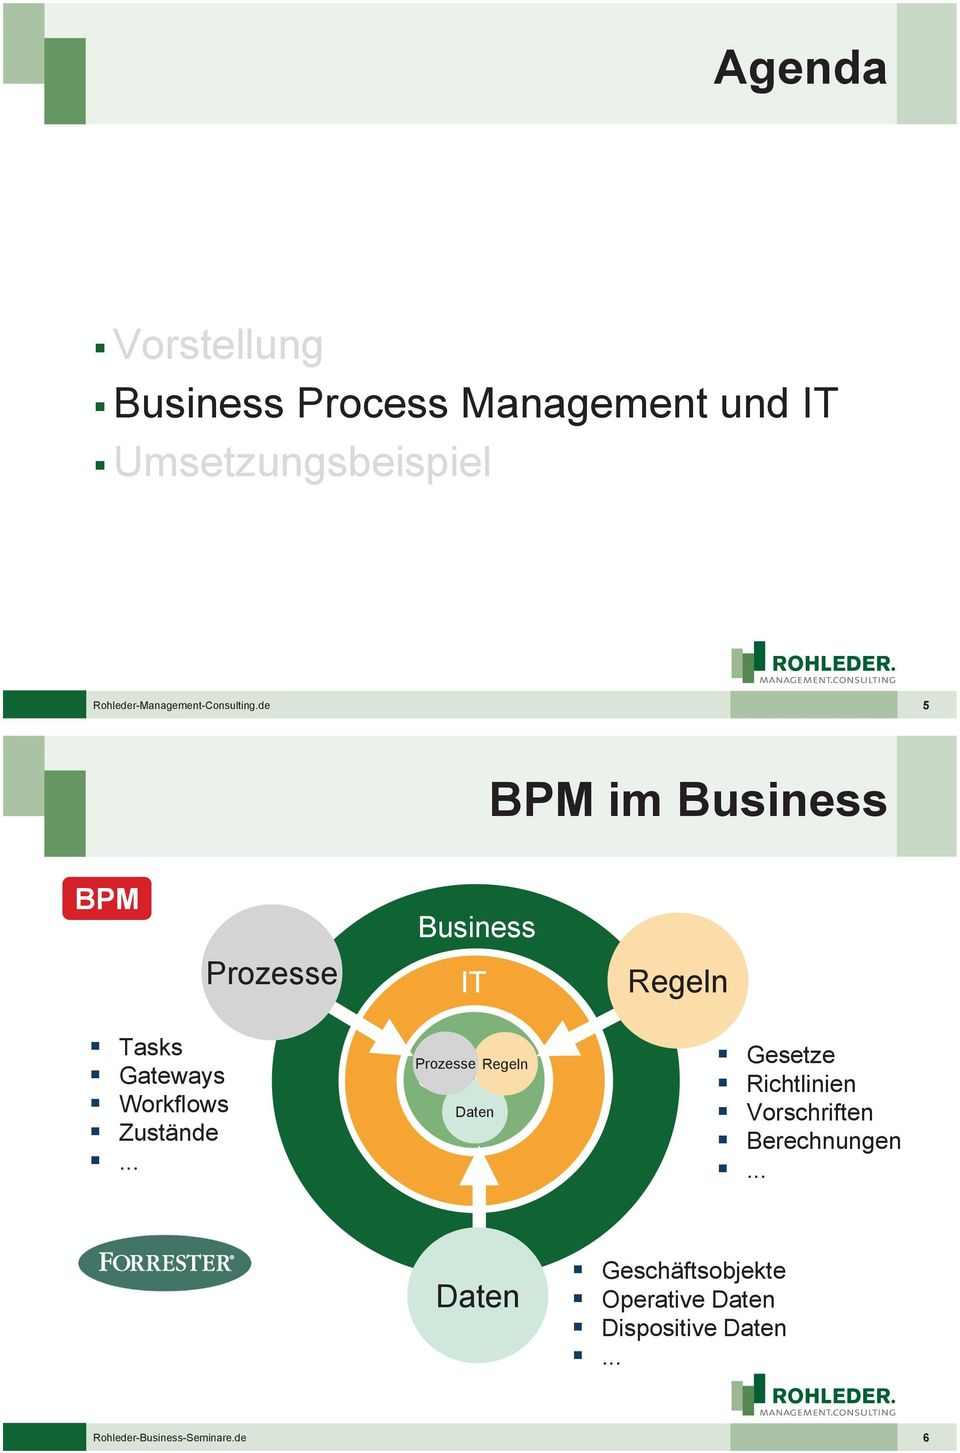 de 5 BPM im Business BPM Business IT Regeln Tasks Gateways Workflows Zustände.